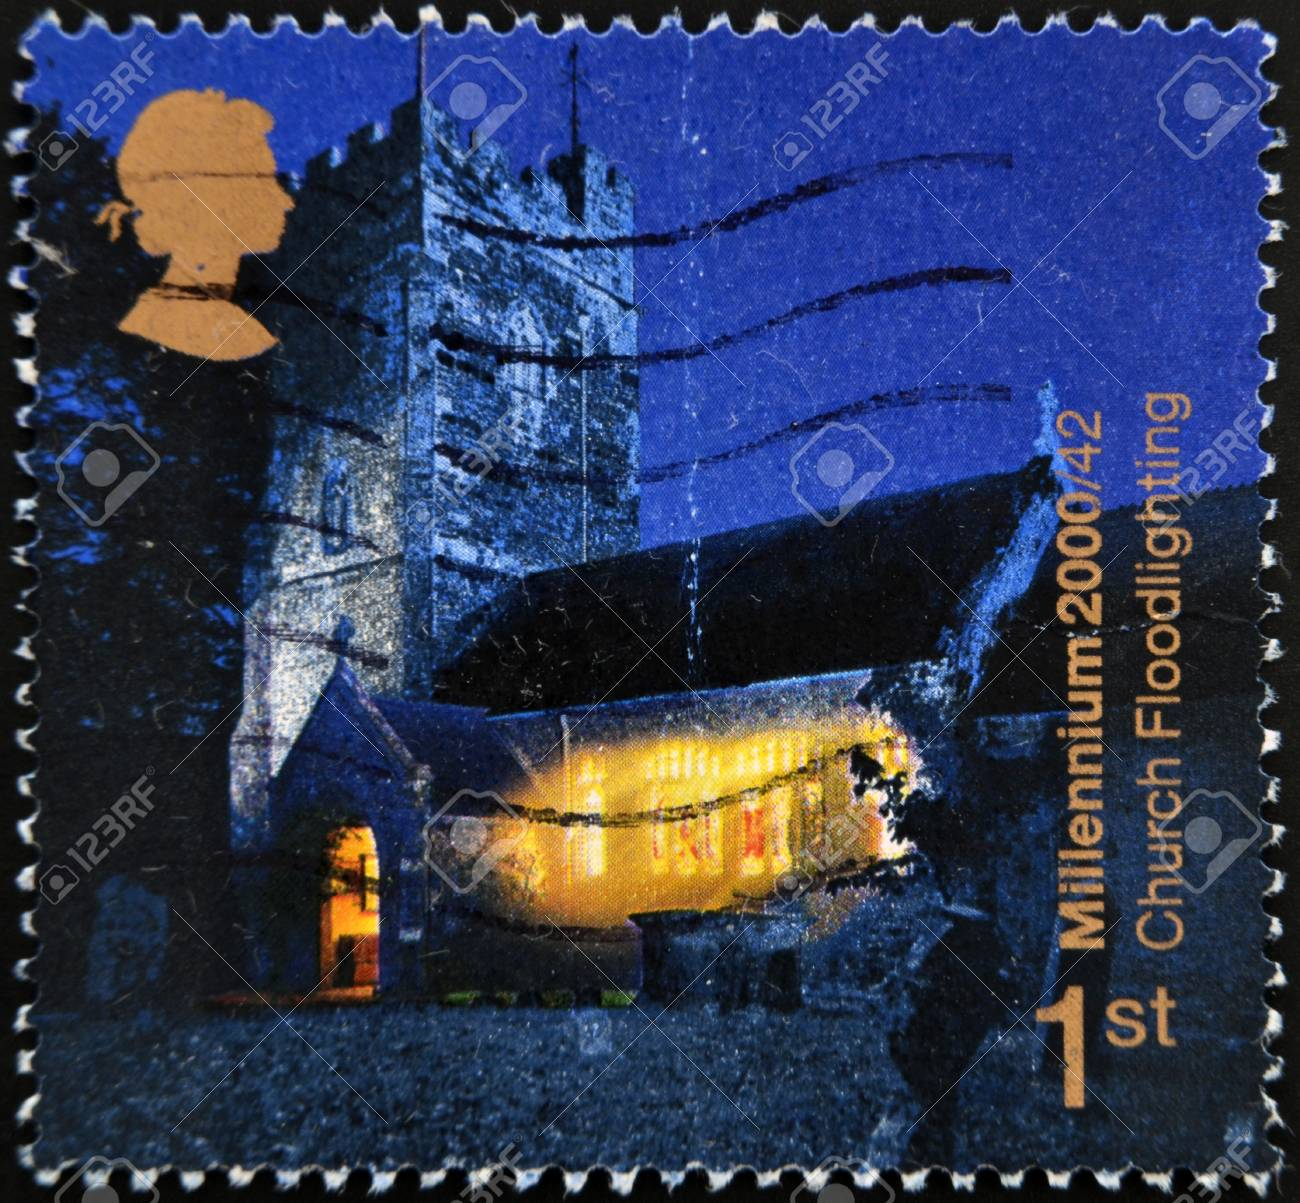 UNITED KINGDOM - CIRCA 2000: A stamp printed in England, is dedicated to Church floodlighting project, circa 2000 Stock Photo - 13291832